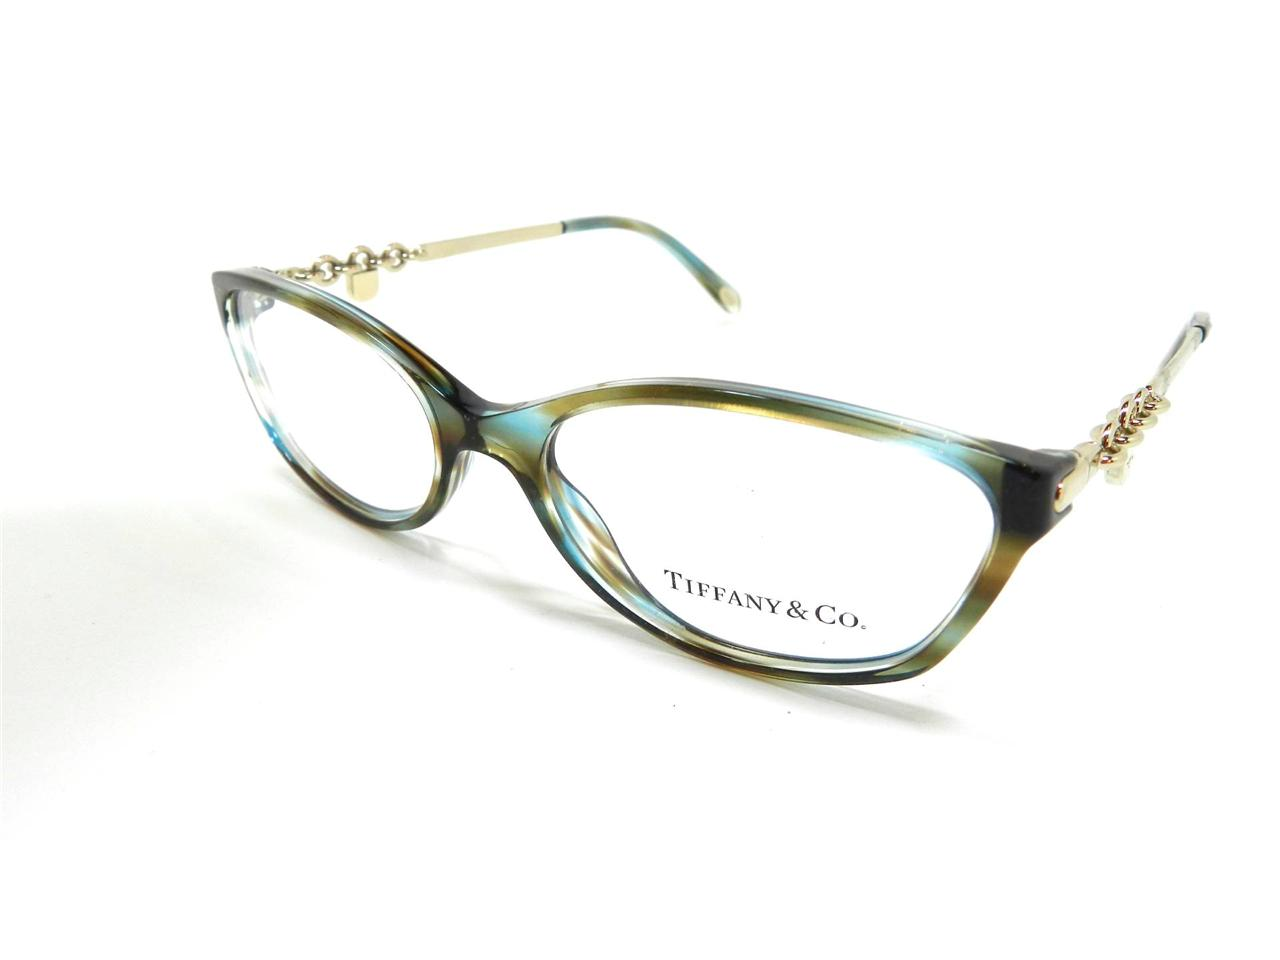 Tiffany Frames Eyeglasses | White Gold Rings